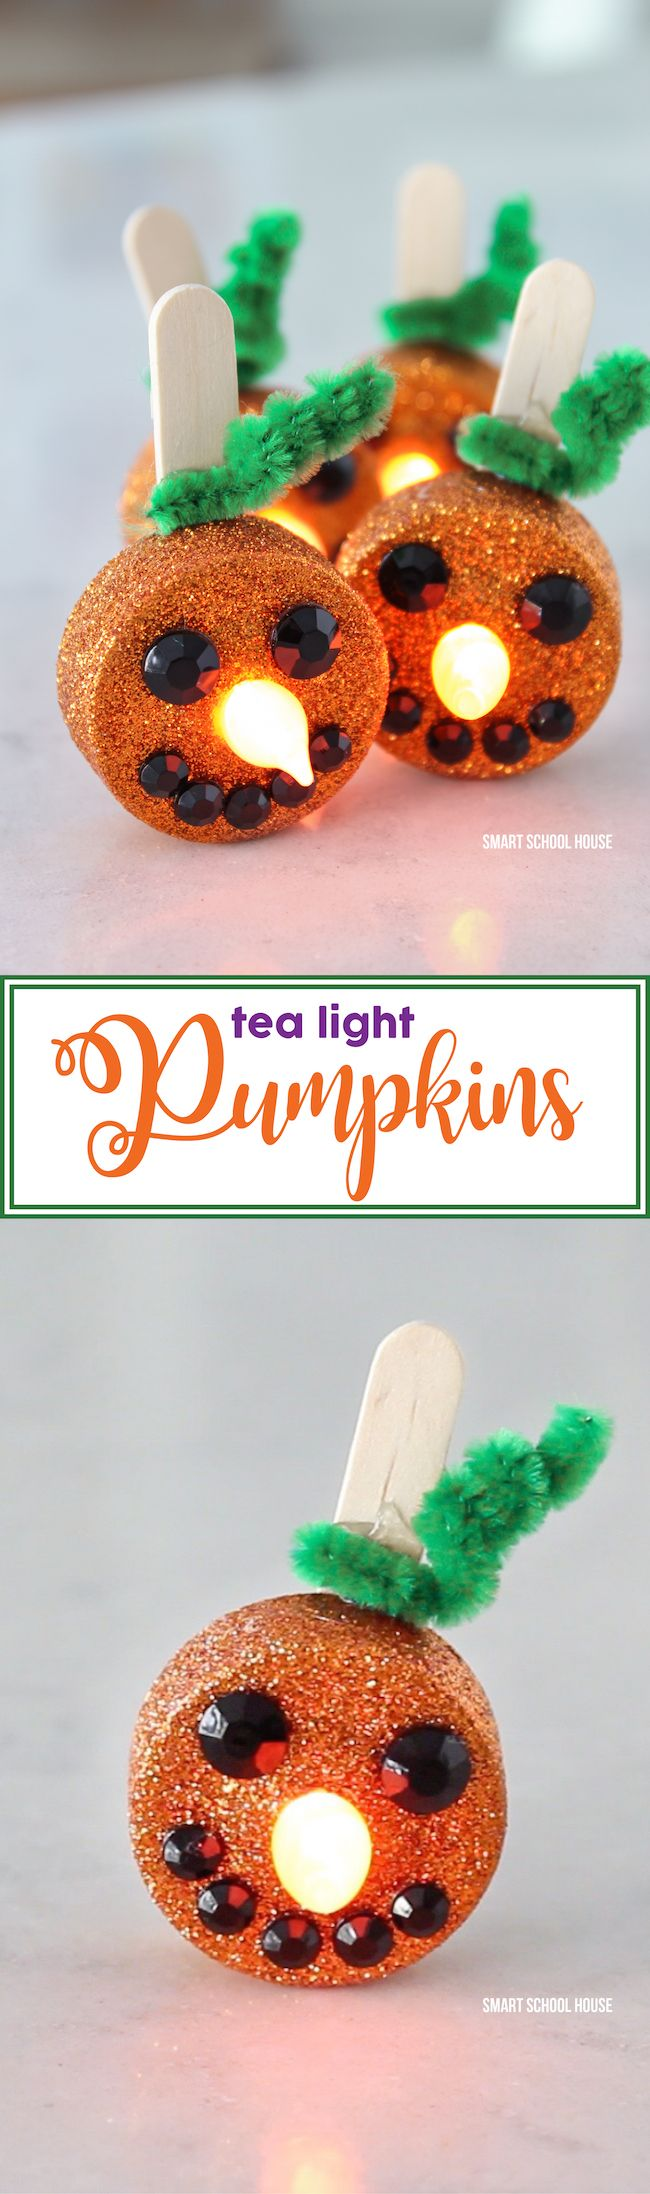 2329 best images about Halloween crafts & recipes on Pinterest ...